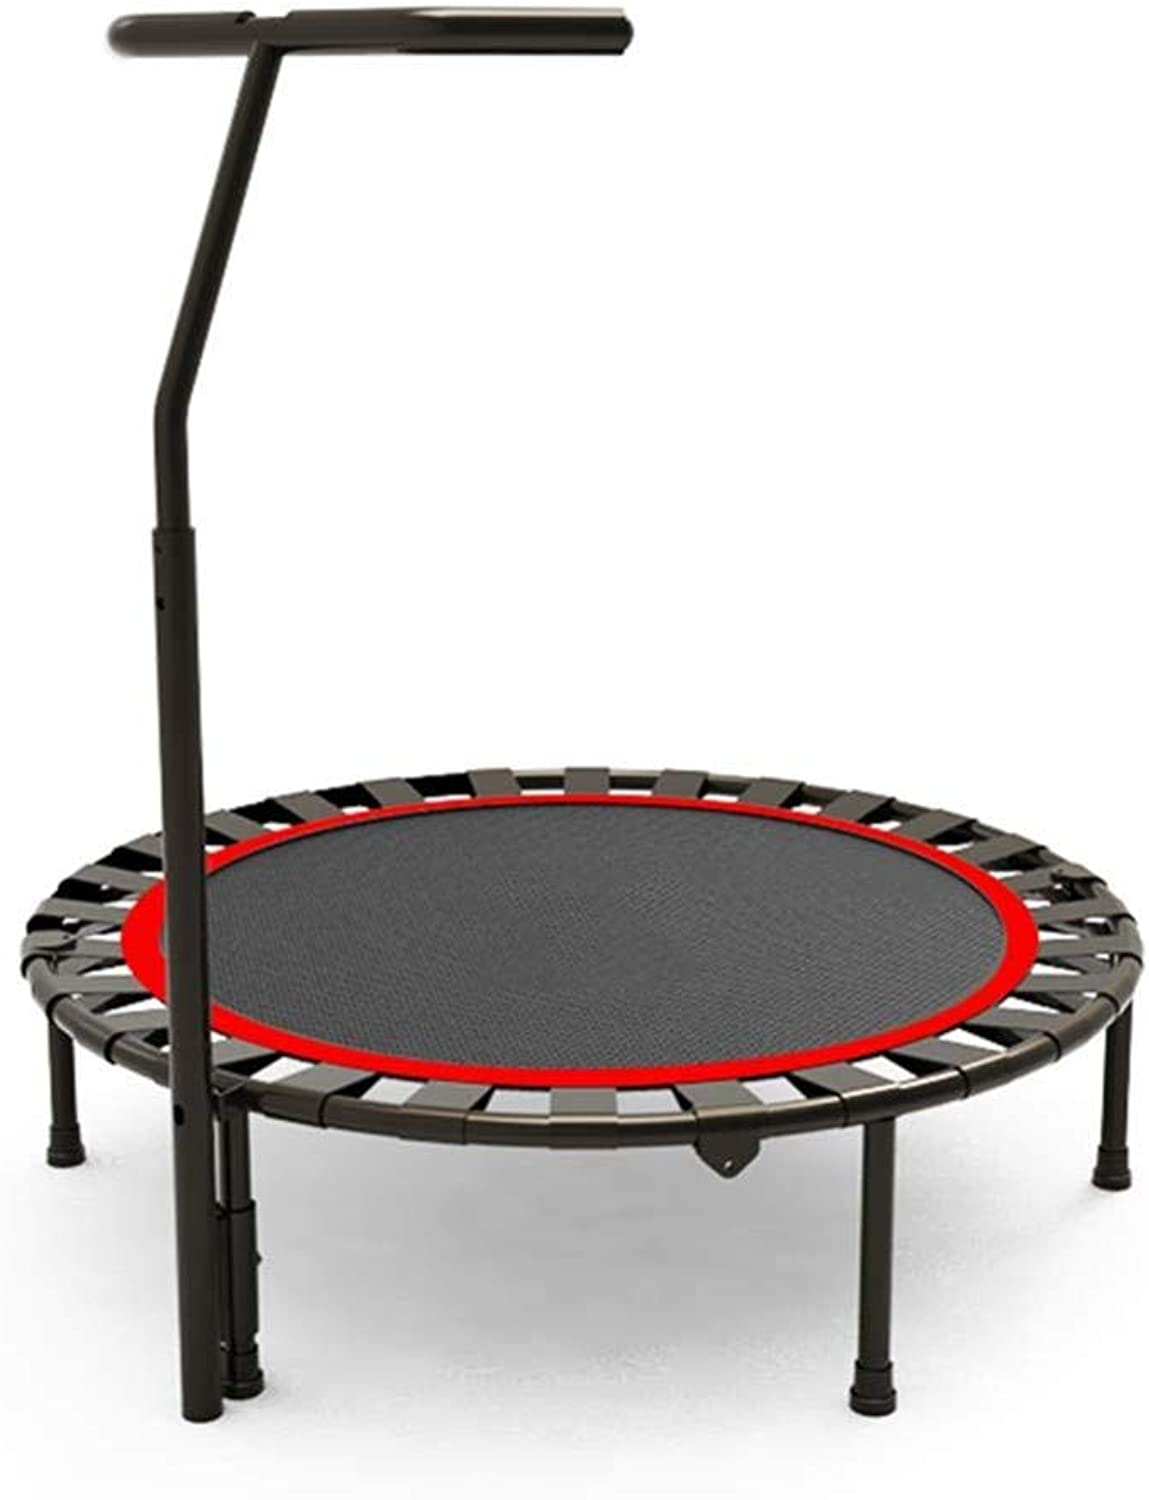 ZJW Trampoline Folding 40 Inches with Adjustable Handrail, Portable Jogging Fitness Adults and Kids Excercise Equipment,A,Trampoline